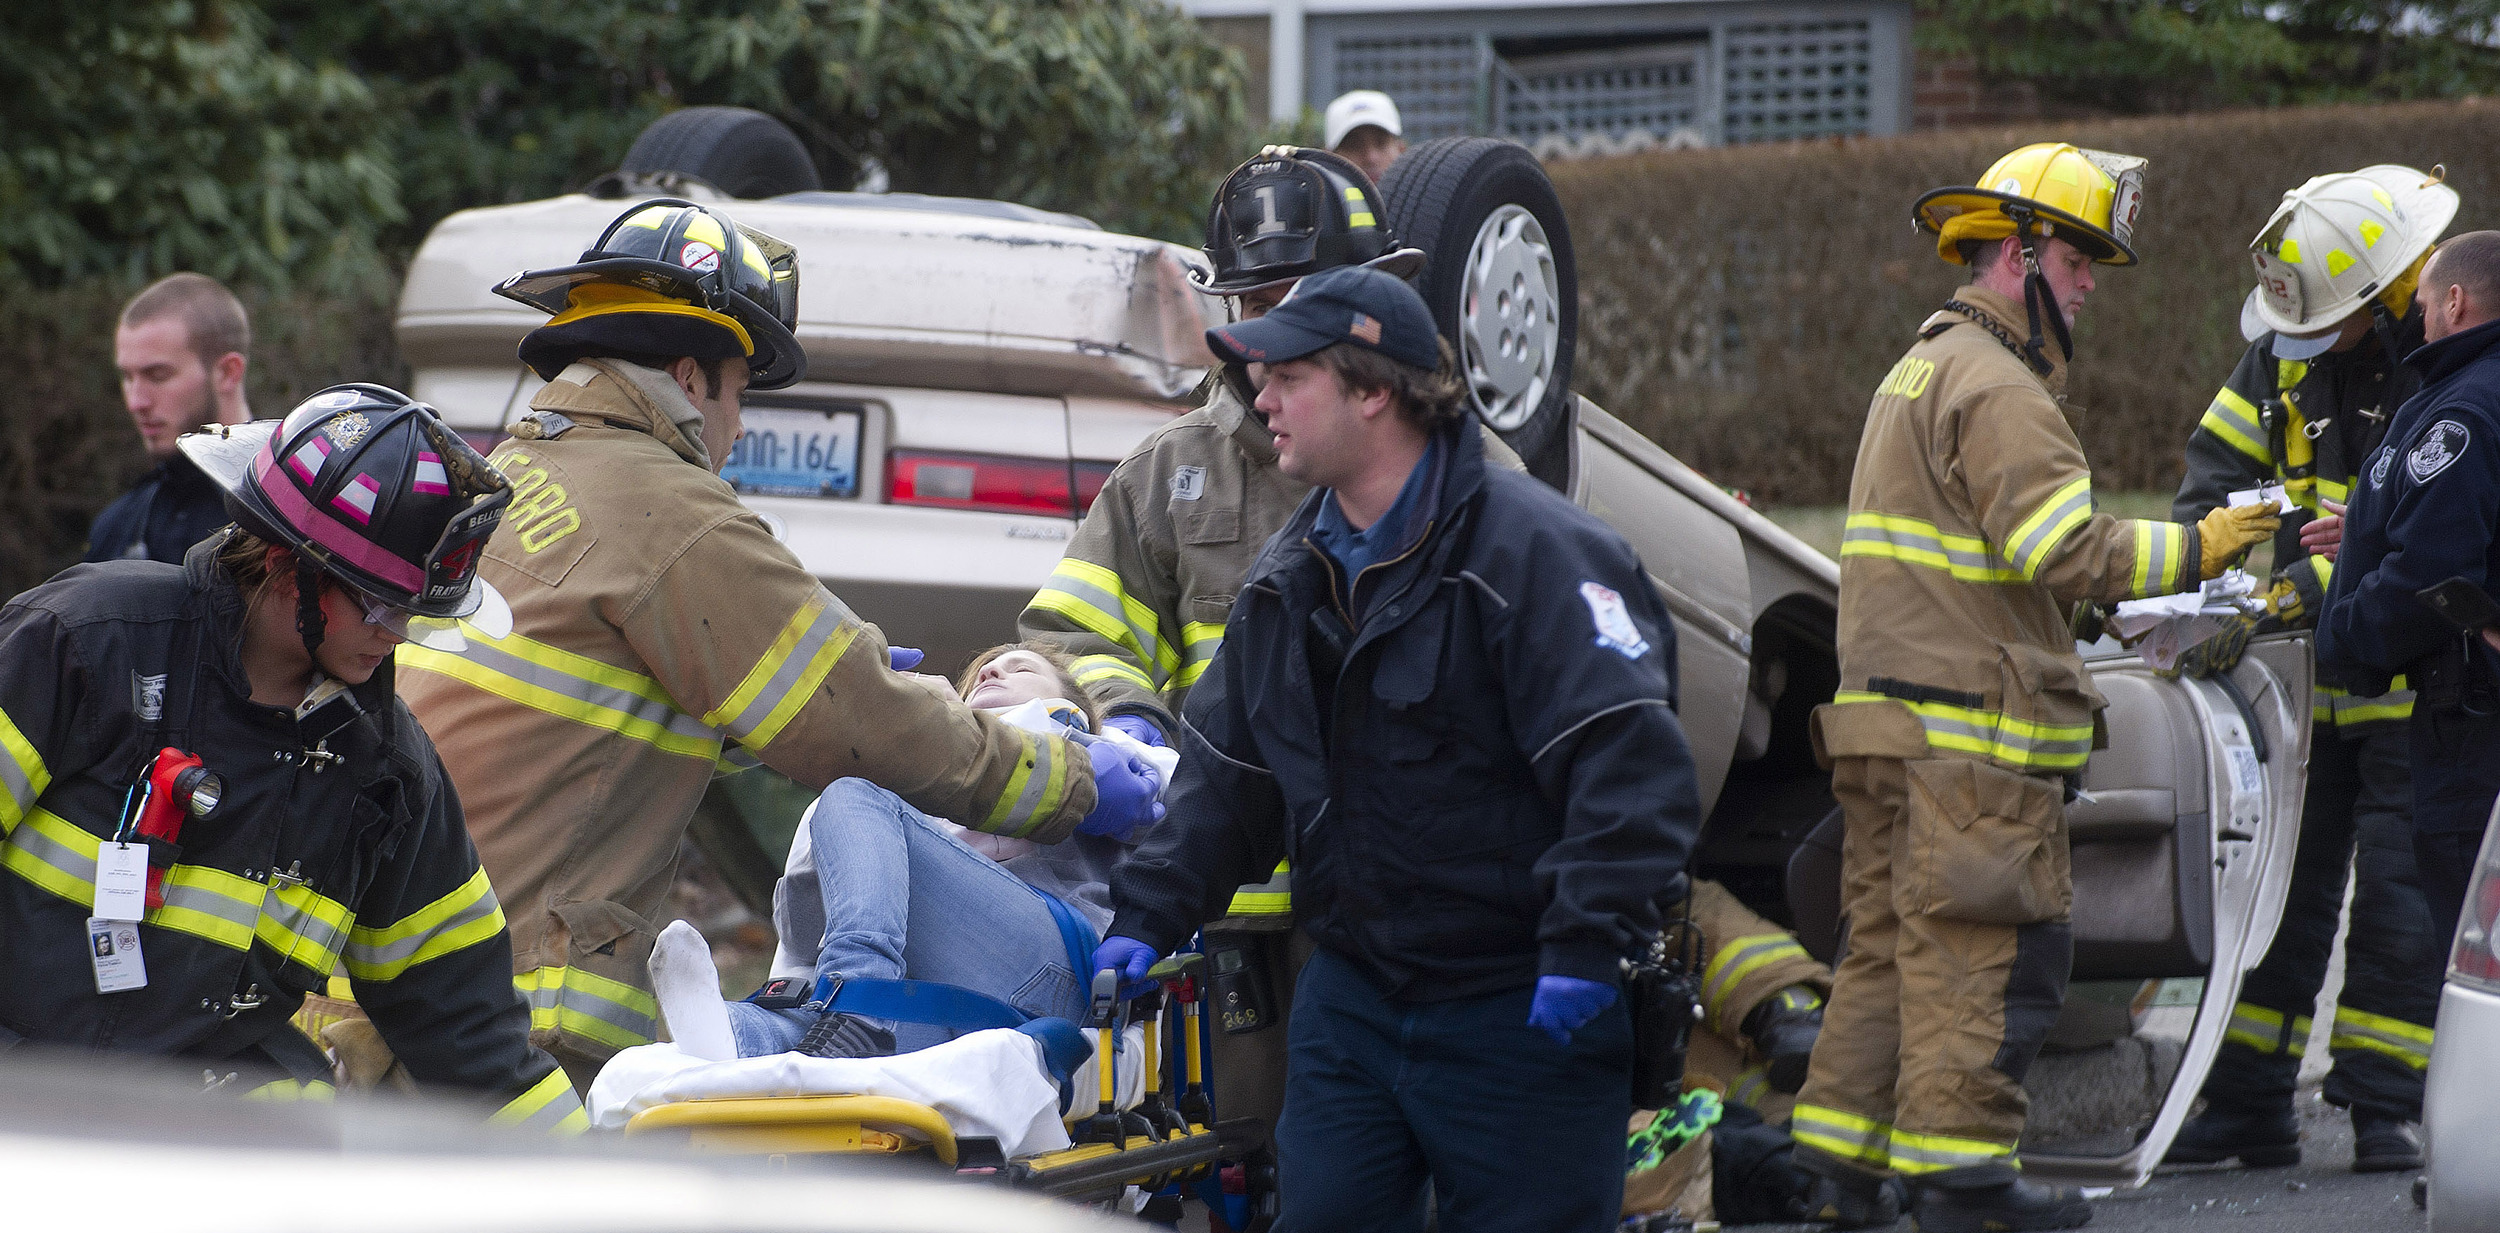 A woman is taken to an ambulance on a stretcher as her overturned Toyota sits on the sidewalk behind her after an accident on Colonial Road on Wednesday, January 1, 2014.